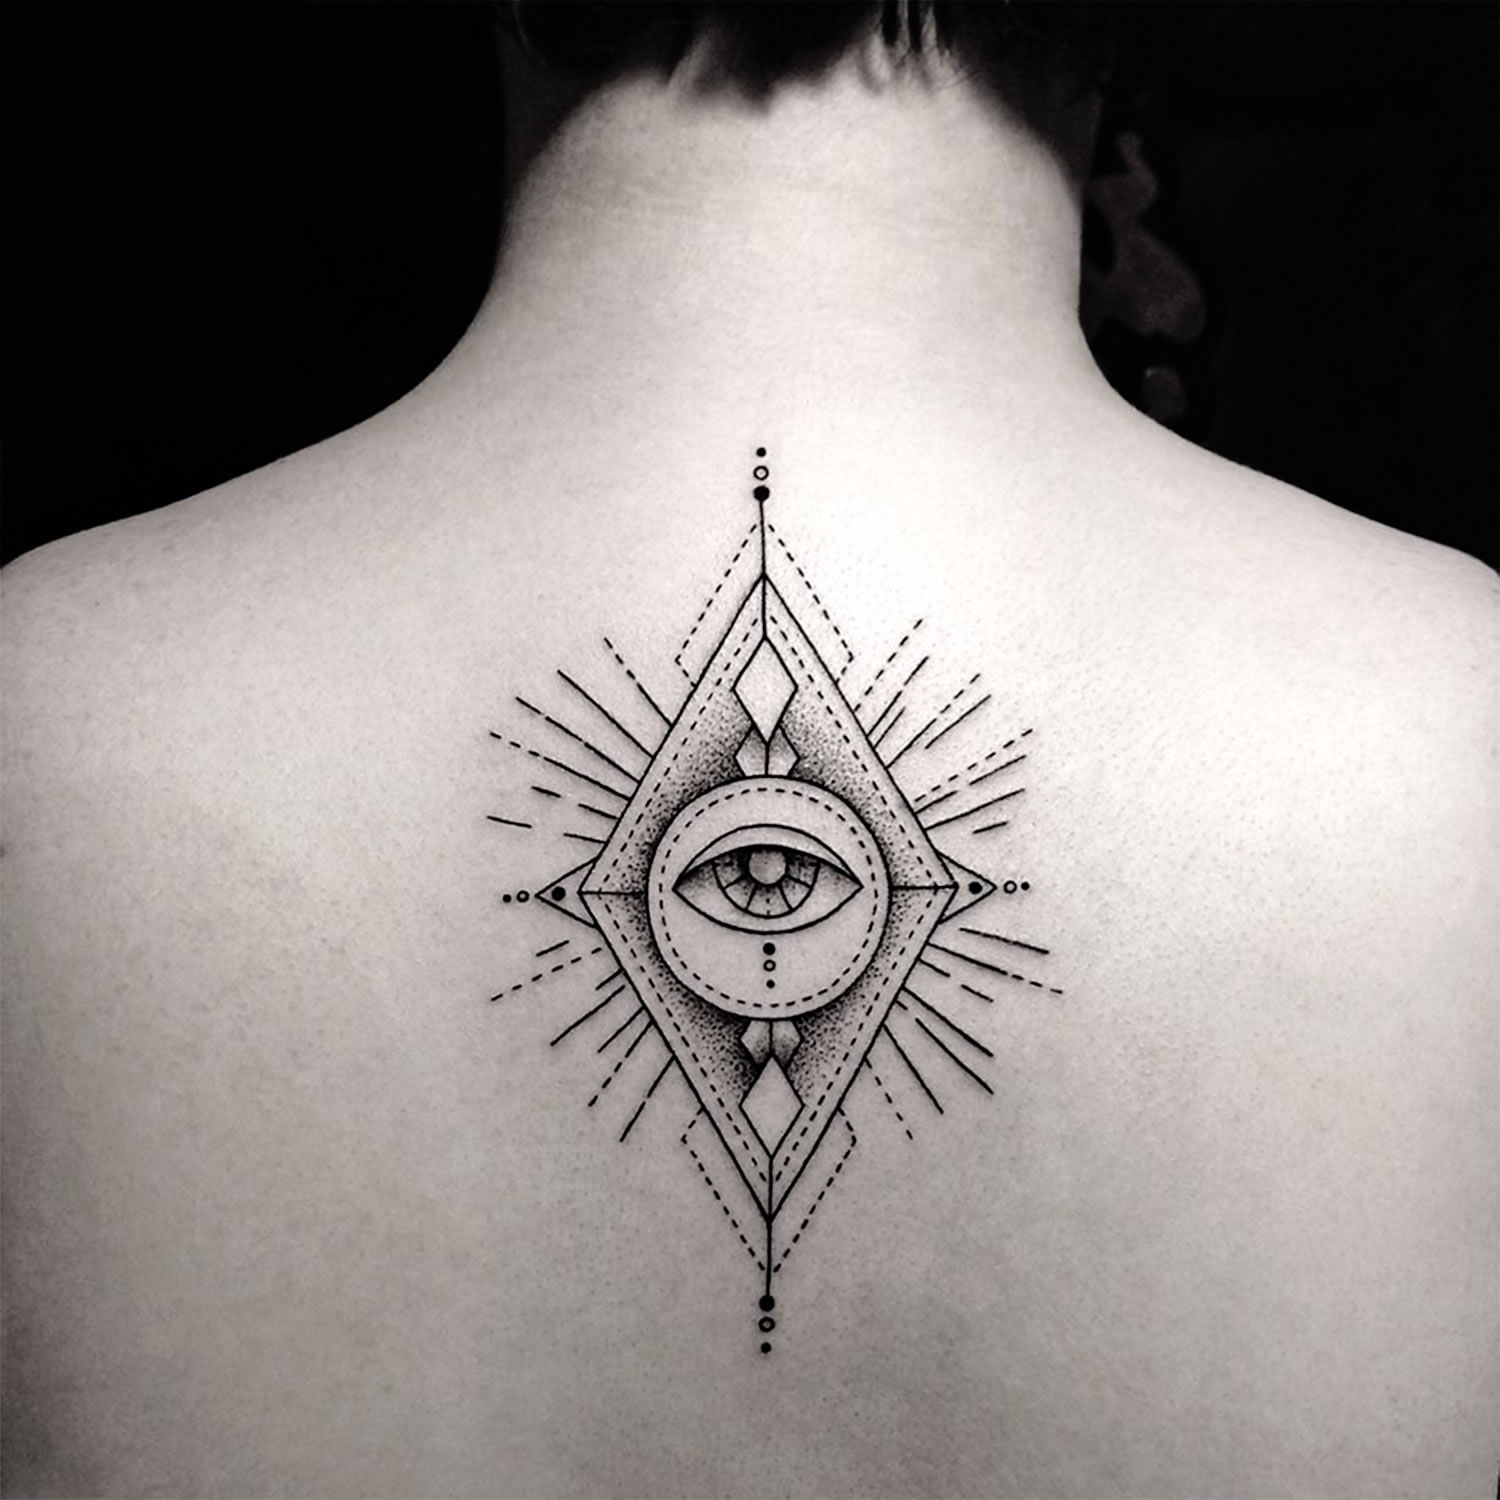 eye of providence tattoo on back by bicem sinik